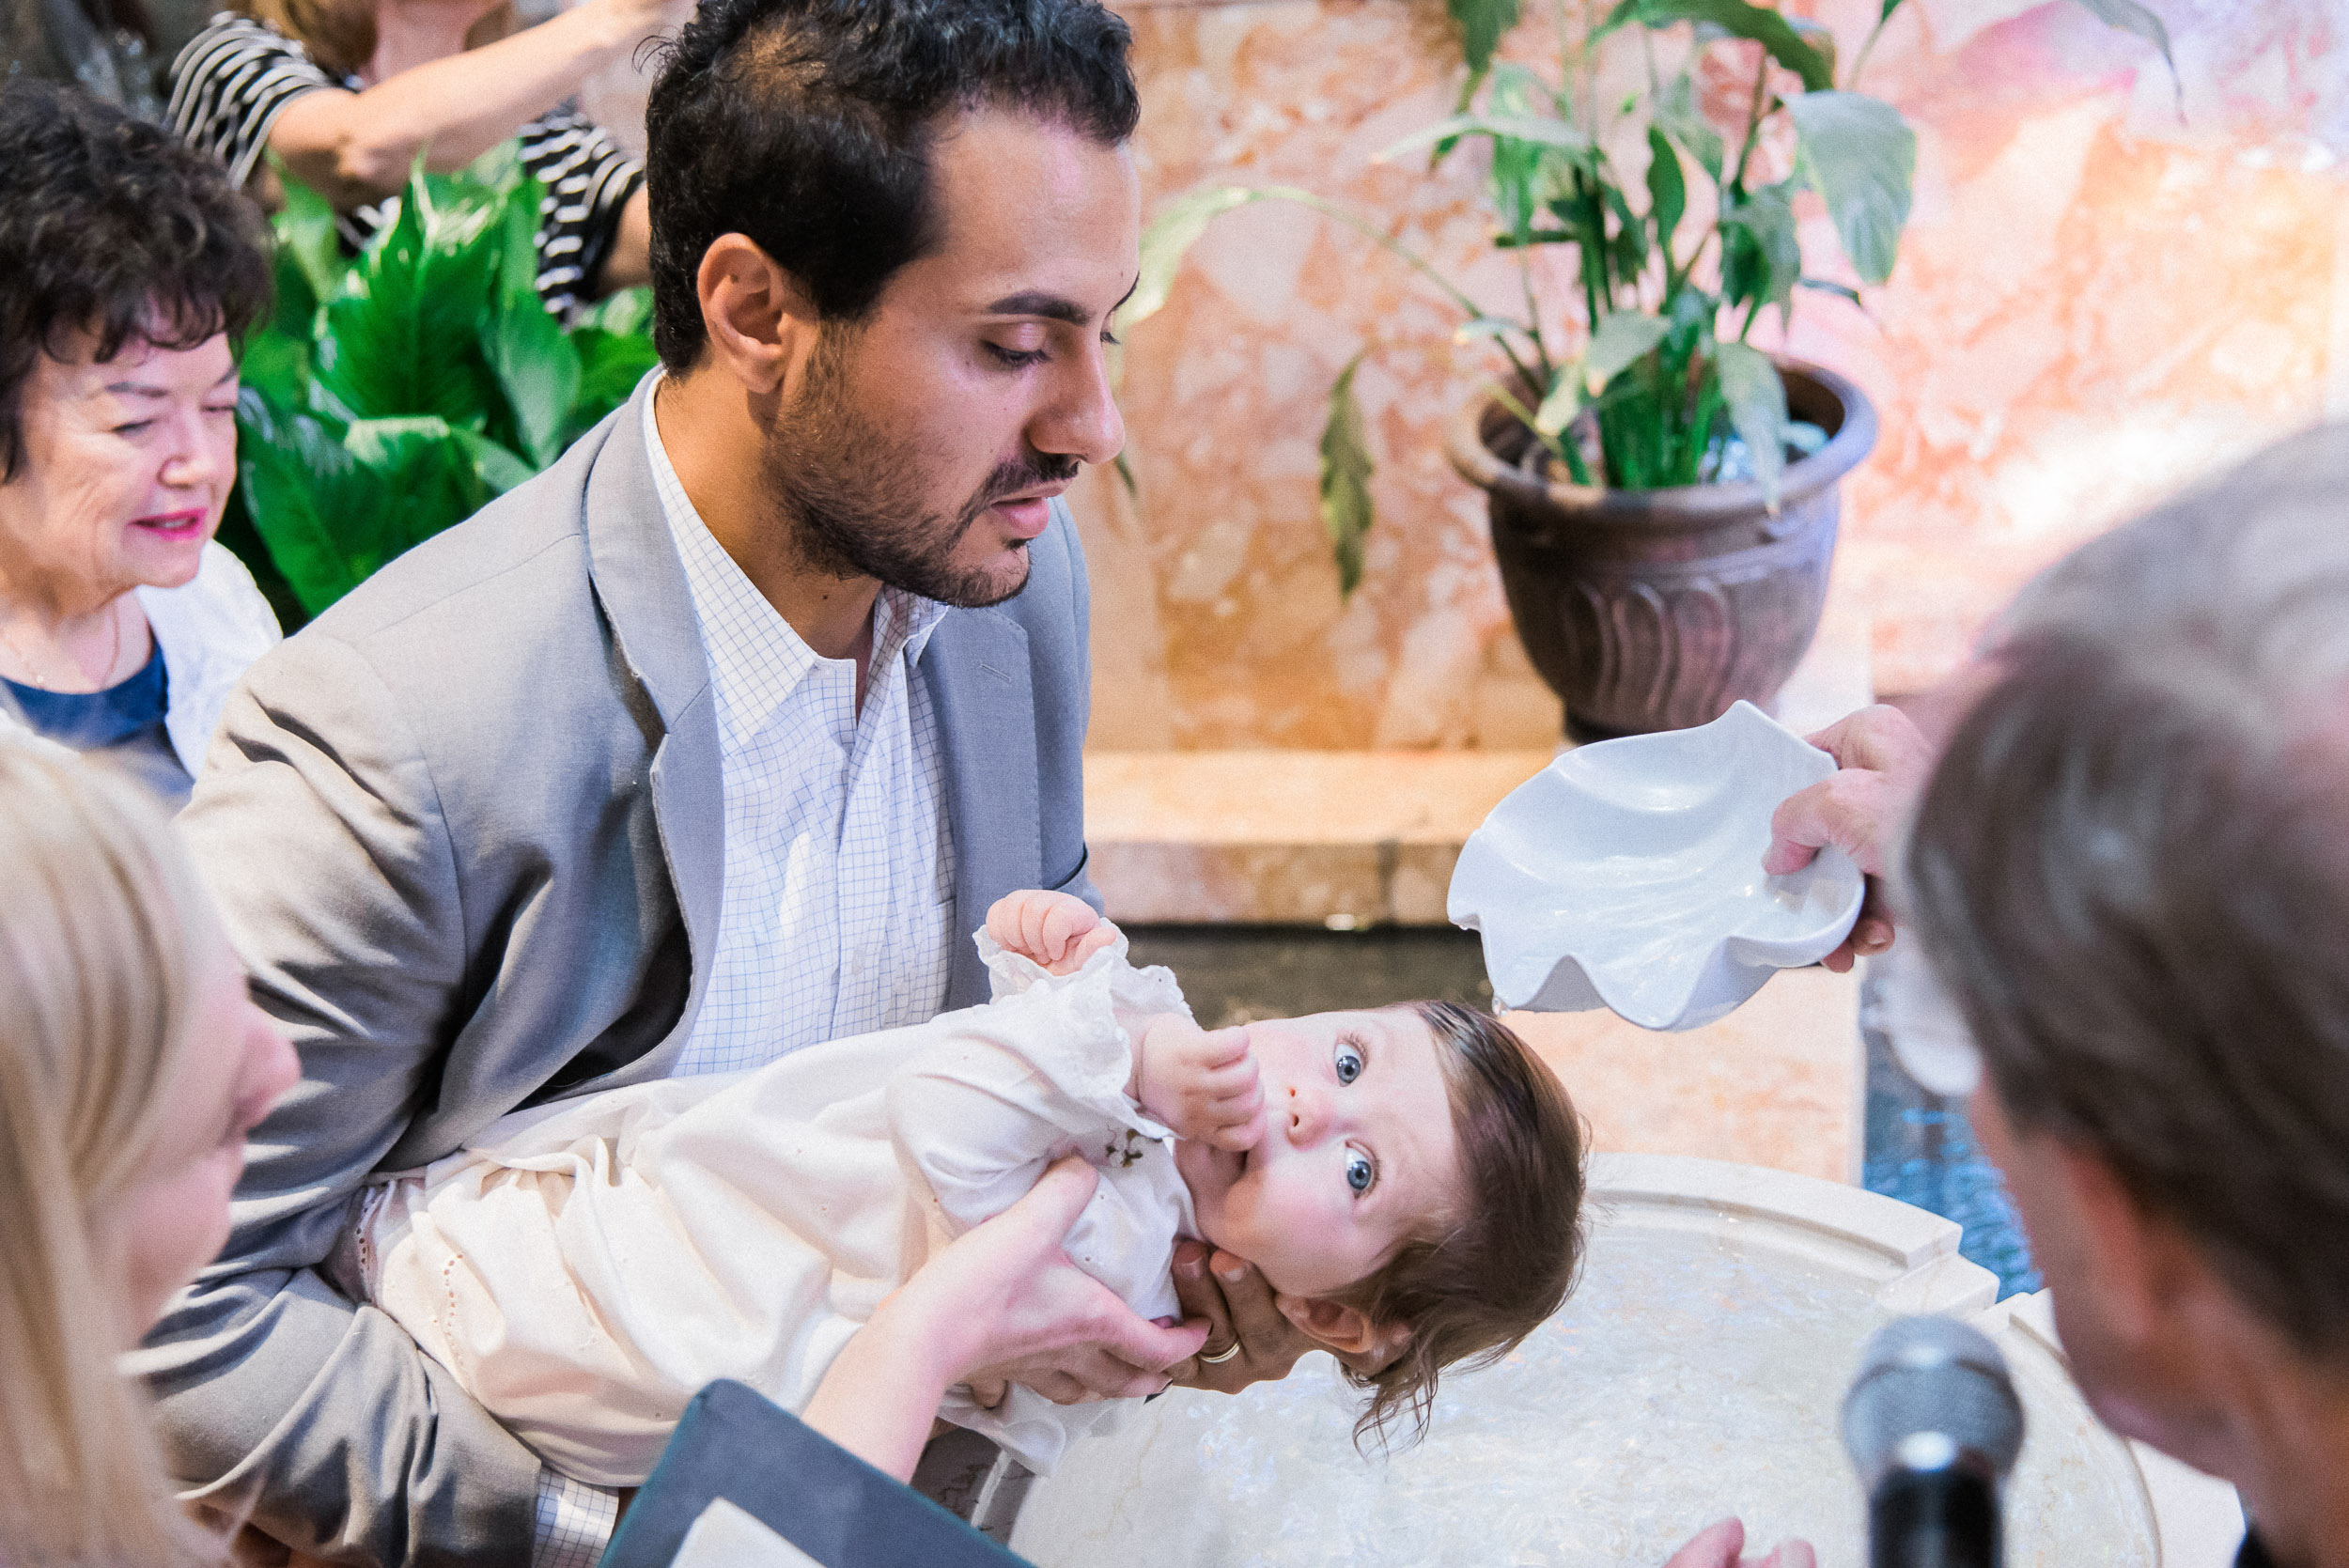 Bryan-Miraflor-Photography-Our-Lady-of-Grace-Neave-Baptism-20161009-0102.jpg